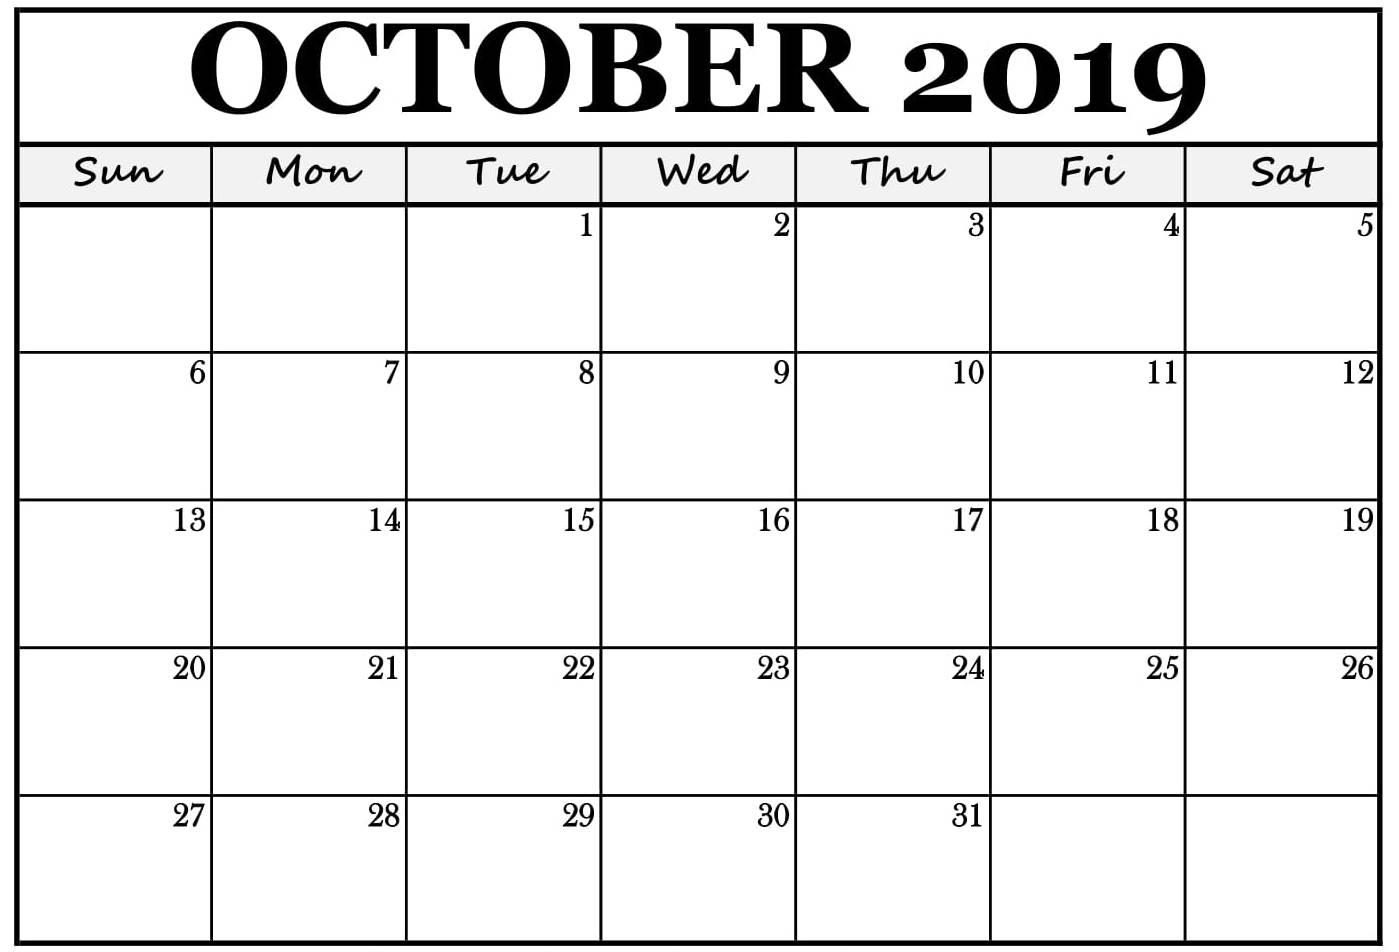 Customized October 2019 Planner Calendar